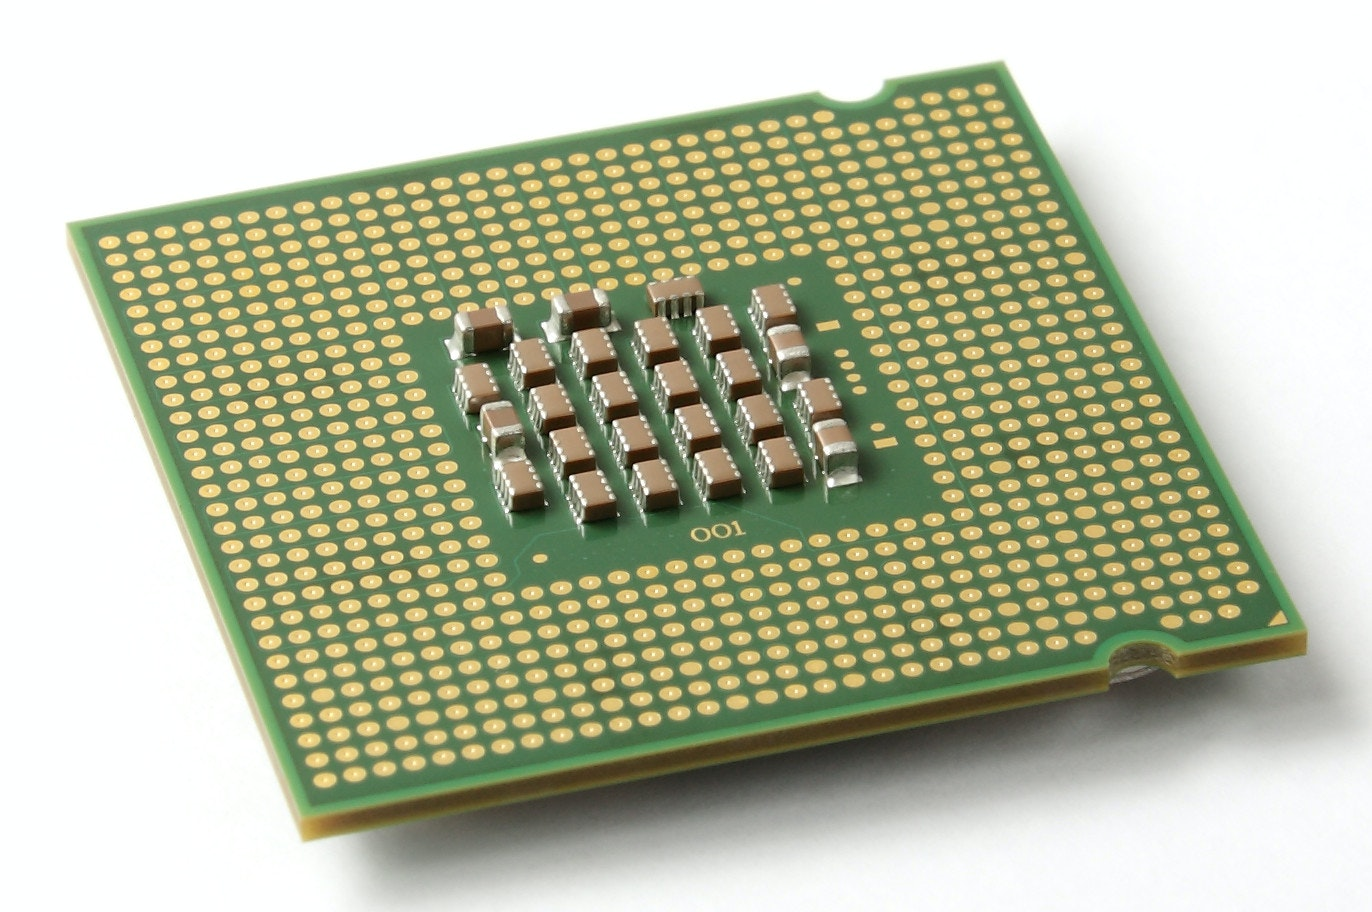 Intel, Central processing unit, Integrated Circuits & Chips, Computer, Chipset, Personal computer, x86, , Intel 4004, Northbridge, computer chip, computer component, technology, electronic device, microcontroller, circuit component, io card, personal computer hardware, network interface controller, cpu, electronics